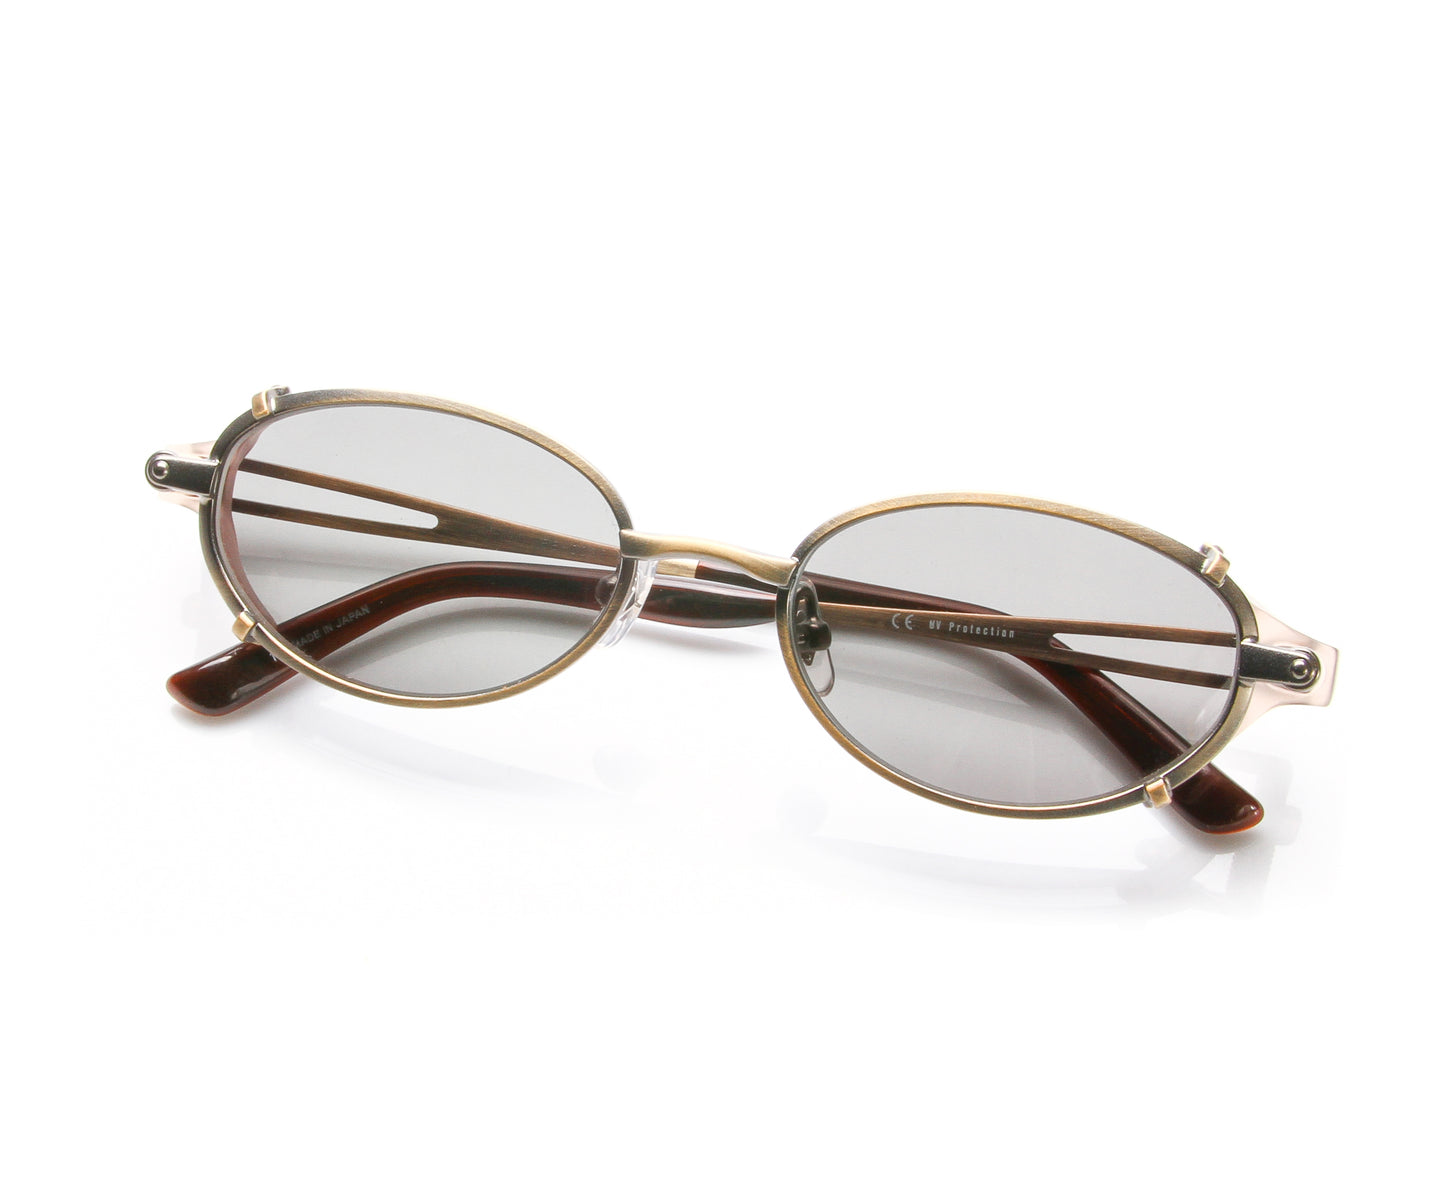 Jean Paul Gaultier 56 0035 1, Jean Paul Gaultier , glasses frames, eyeglasses online, eyeglass frames, mens glasses, womens glasses, buy glasses online, designer eyeglasses, vintage sunglasses, retro sunglasses, vintage glasses, sunglass, eyeglass, glasses, lens, vintage frames company, vf